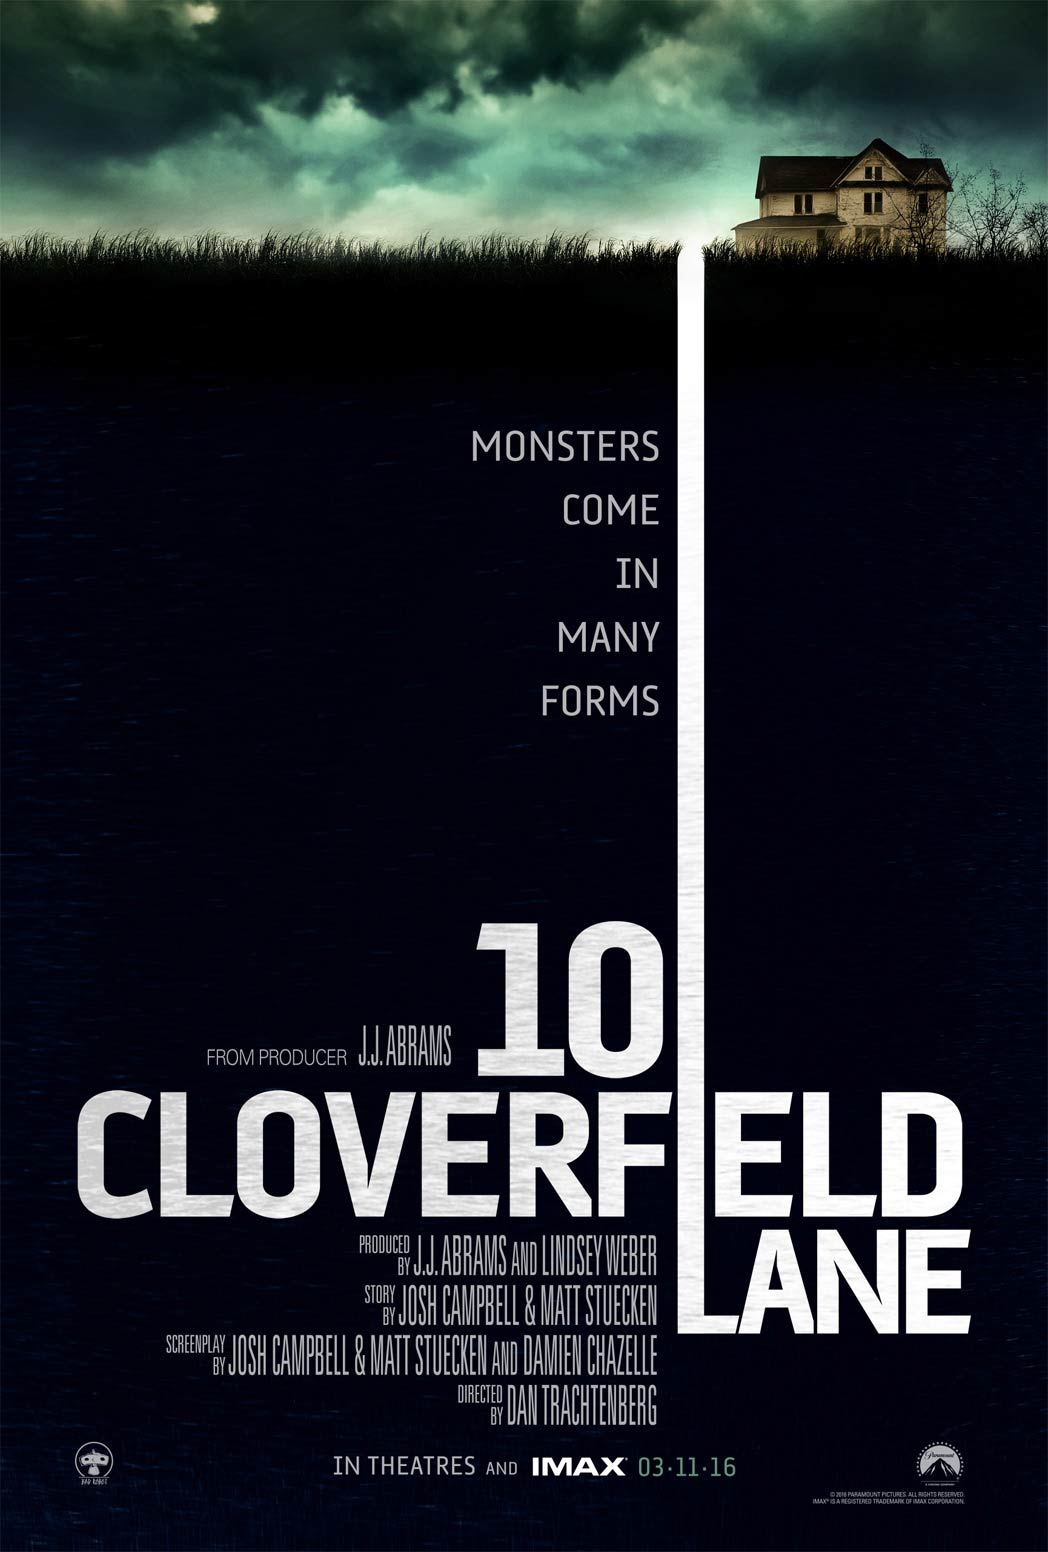 cloverfield lane 10 film recenzja j. j. abrams mary elizabeth winstead